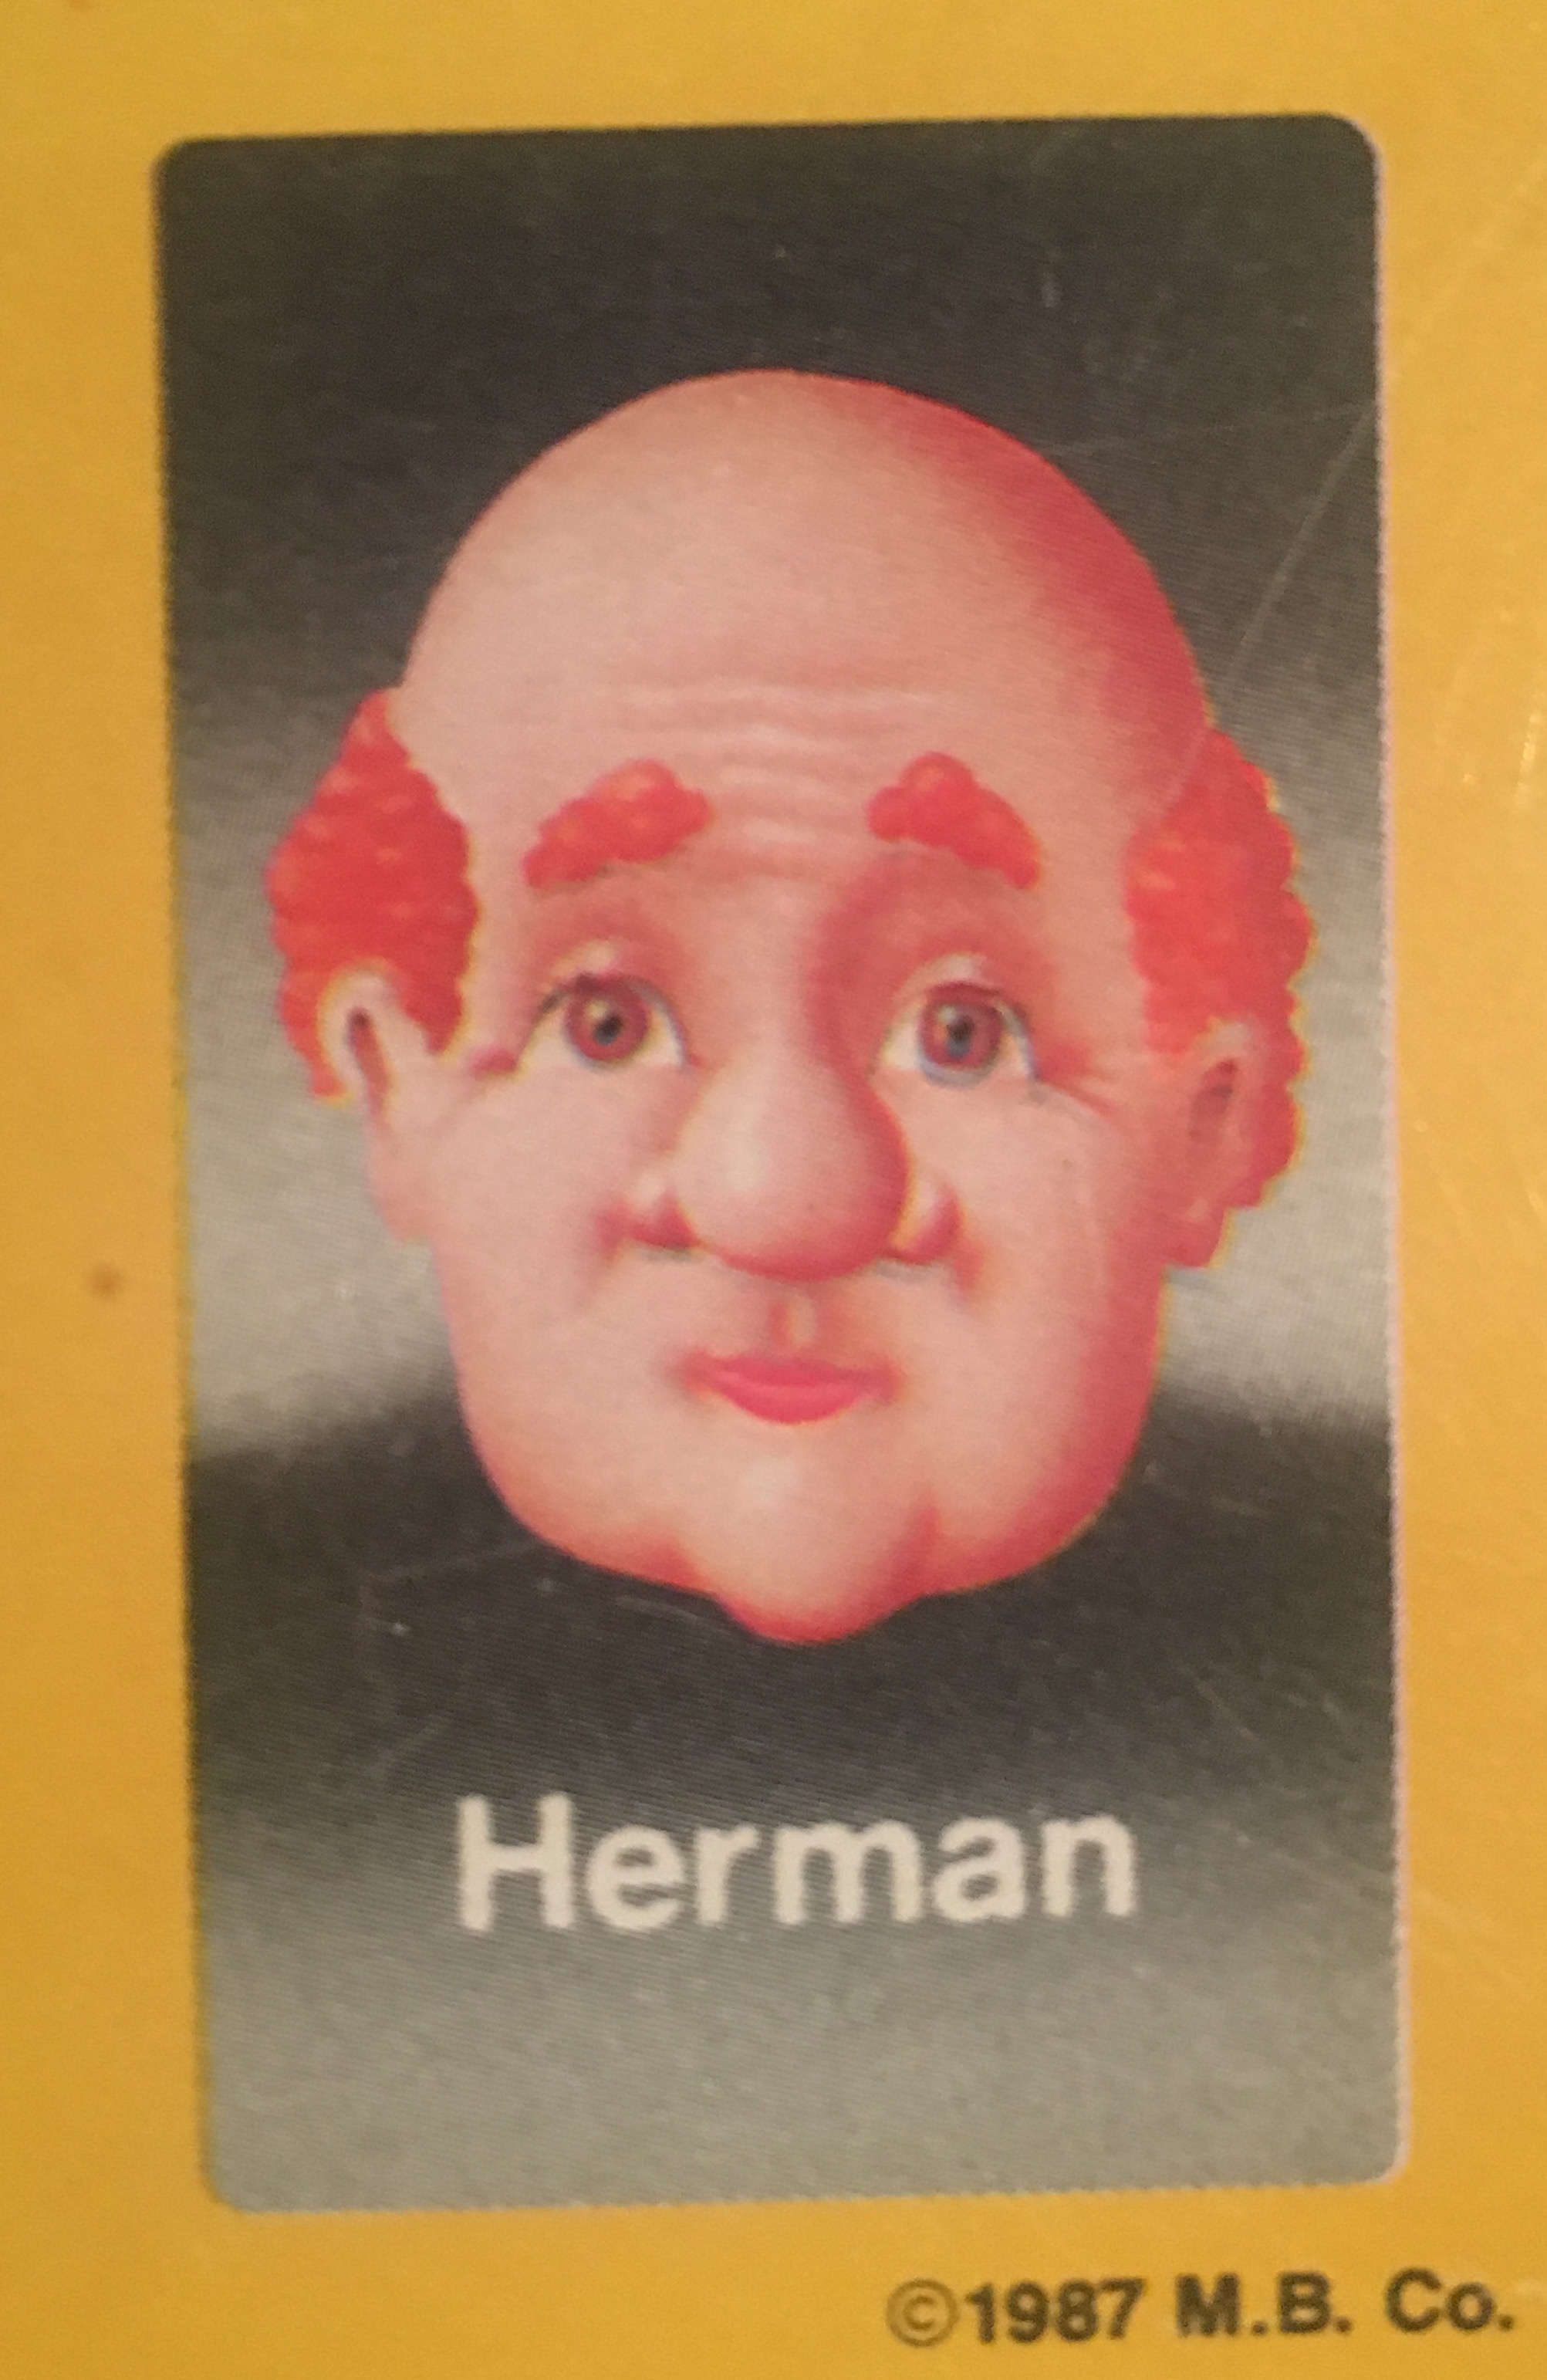 - Herman is the latest in a long line of proud plumbers. During a mid-life crisis he became disillusioned with snaking hairballs out of shower drains, and when buying a motorcycle didn't make him feel better, he spontaneously auditioned to become a Guess Who?® face. Chosen for his combination of bald head, flame orange hair, and bulbous nose, he was as surprised as the rest of us when he was chosen. The fortune and fame made Herman uncomfortable, and helped him to realize that what he loved most was plunging a plunger into a potty plugged with poop. He gave most of his Guess Who?® money away and went back to his life as the bathroom wizard he was born to be.